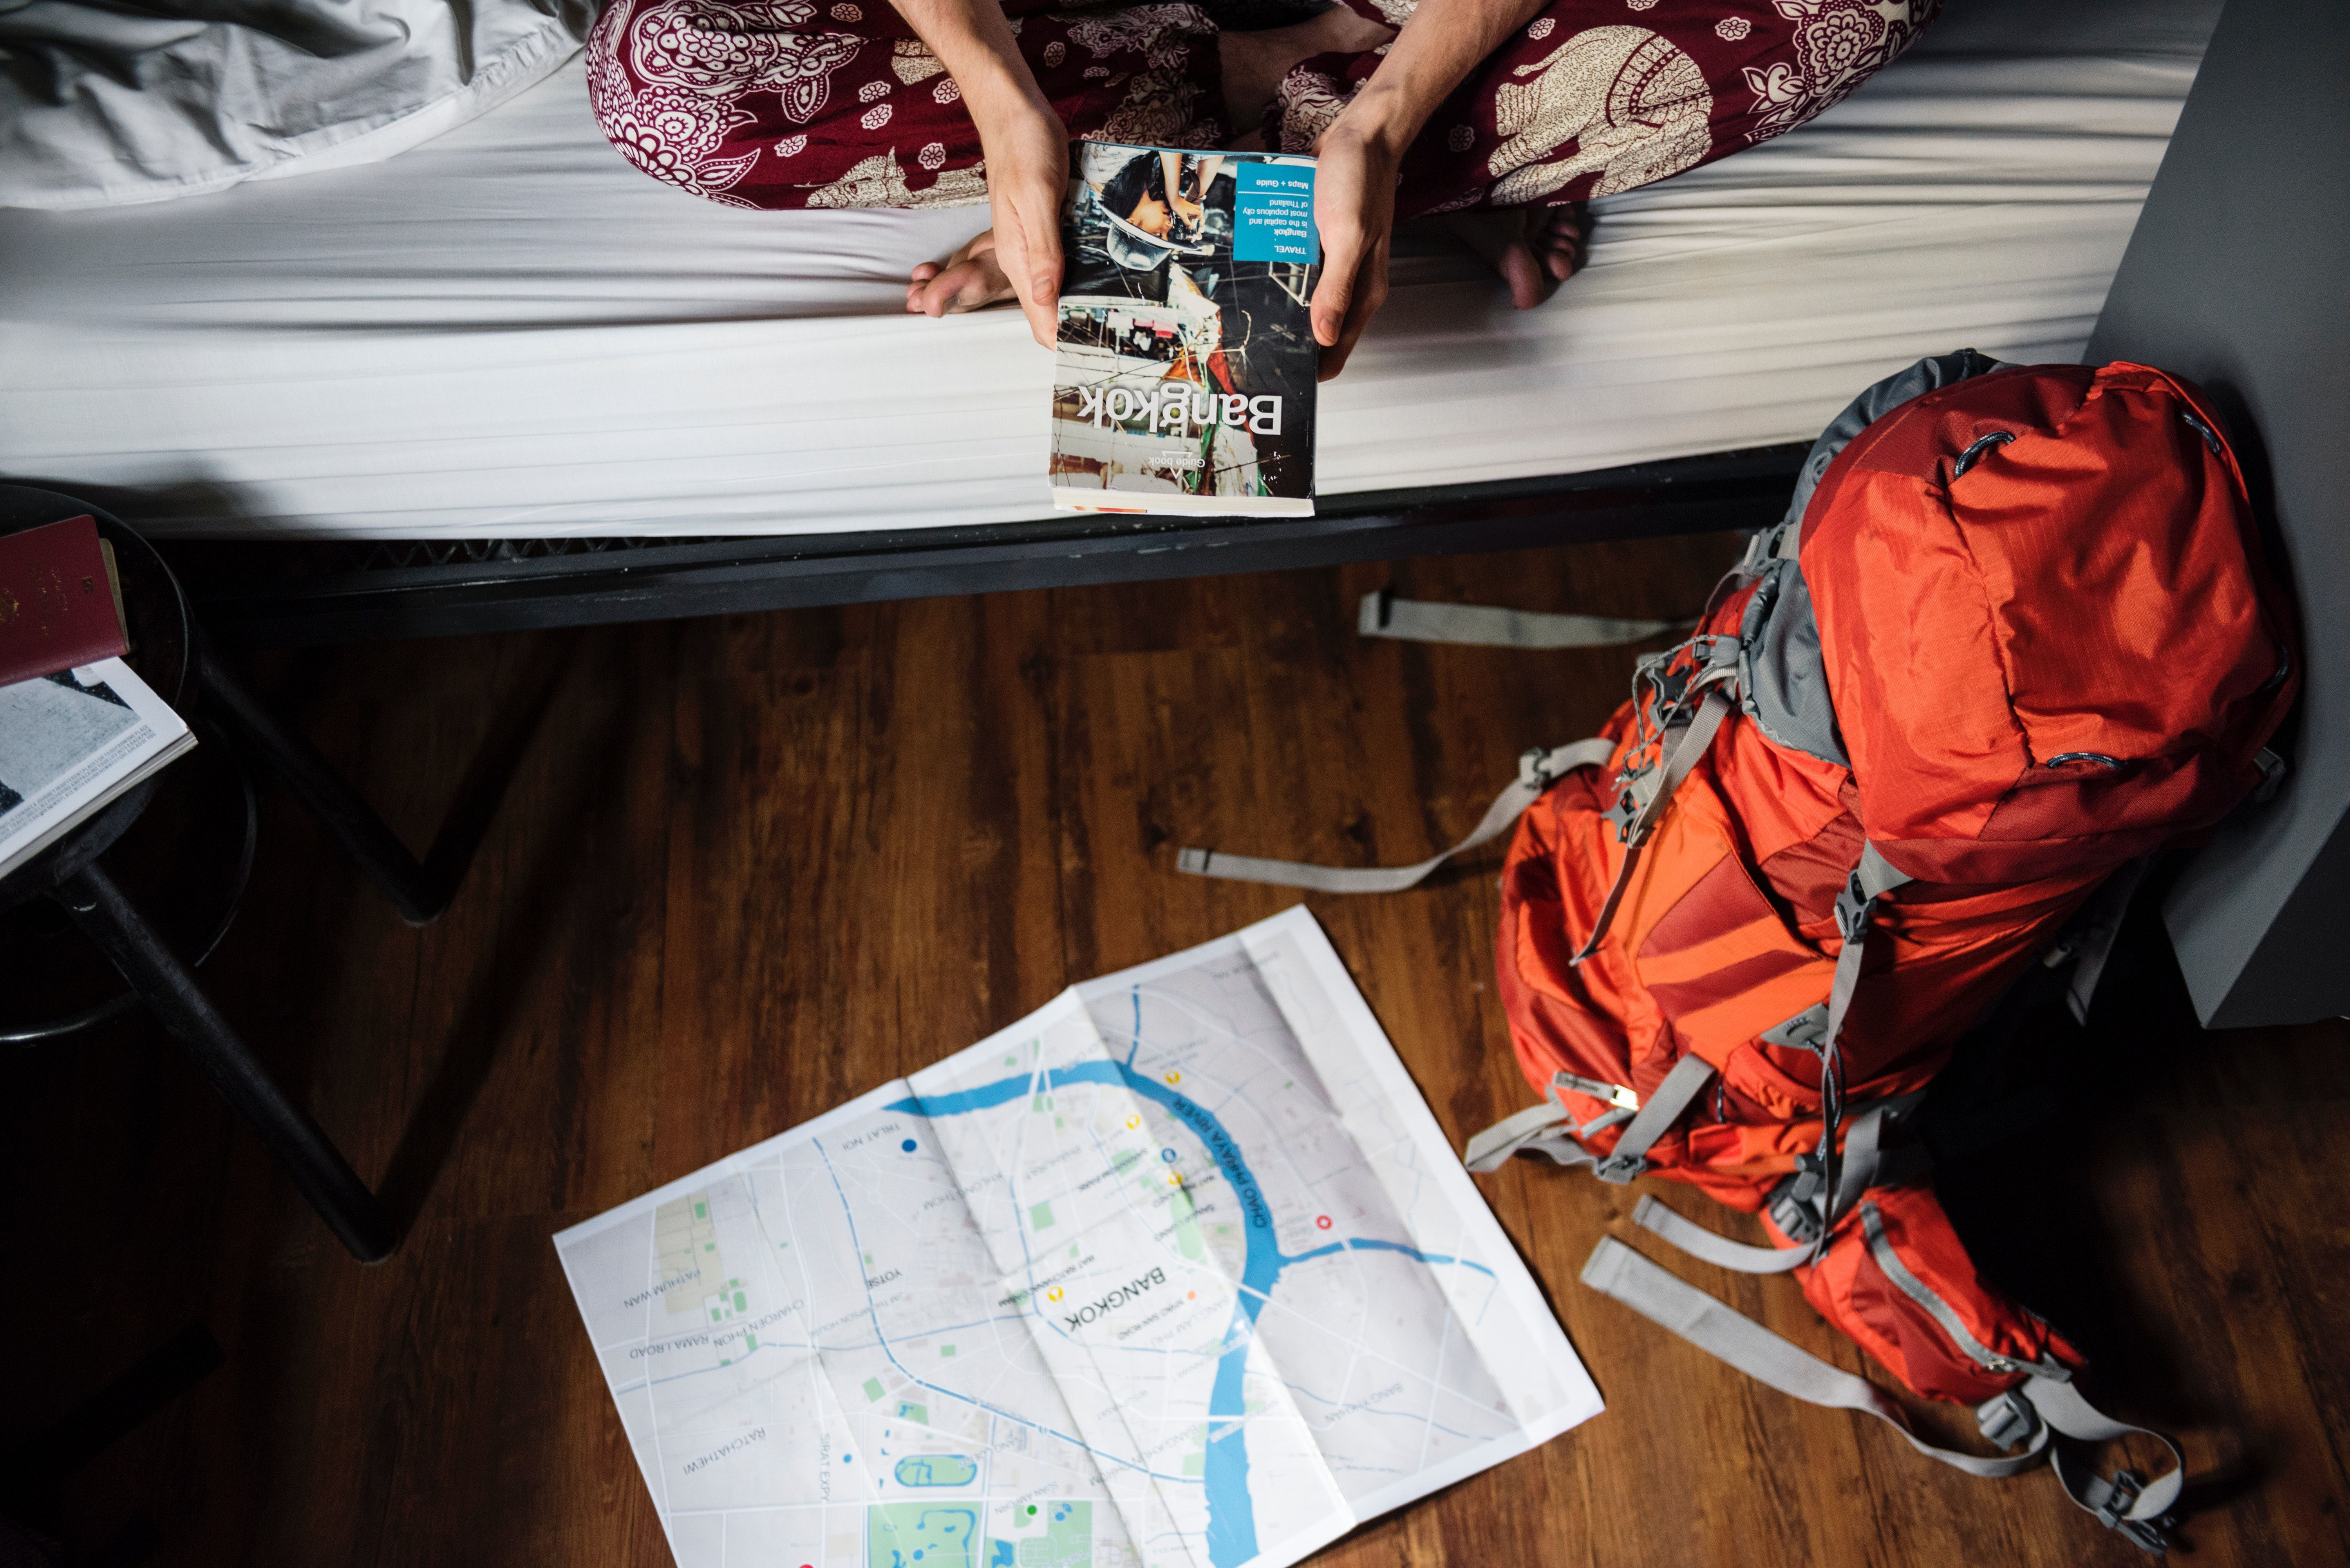 The Best Advice You Could Ever Get About Backpacking Abroad